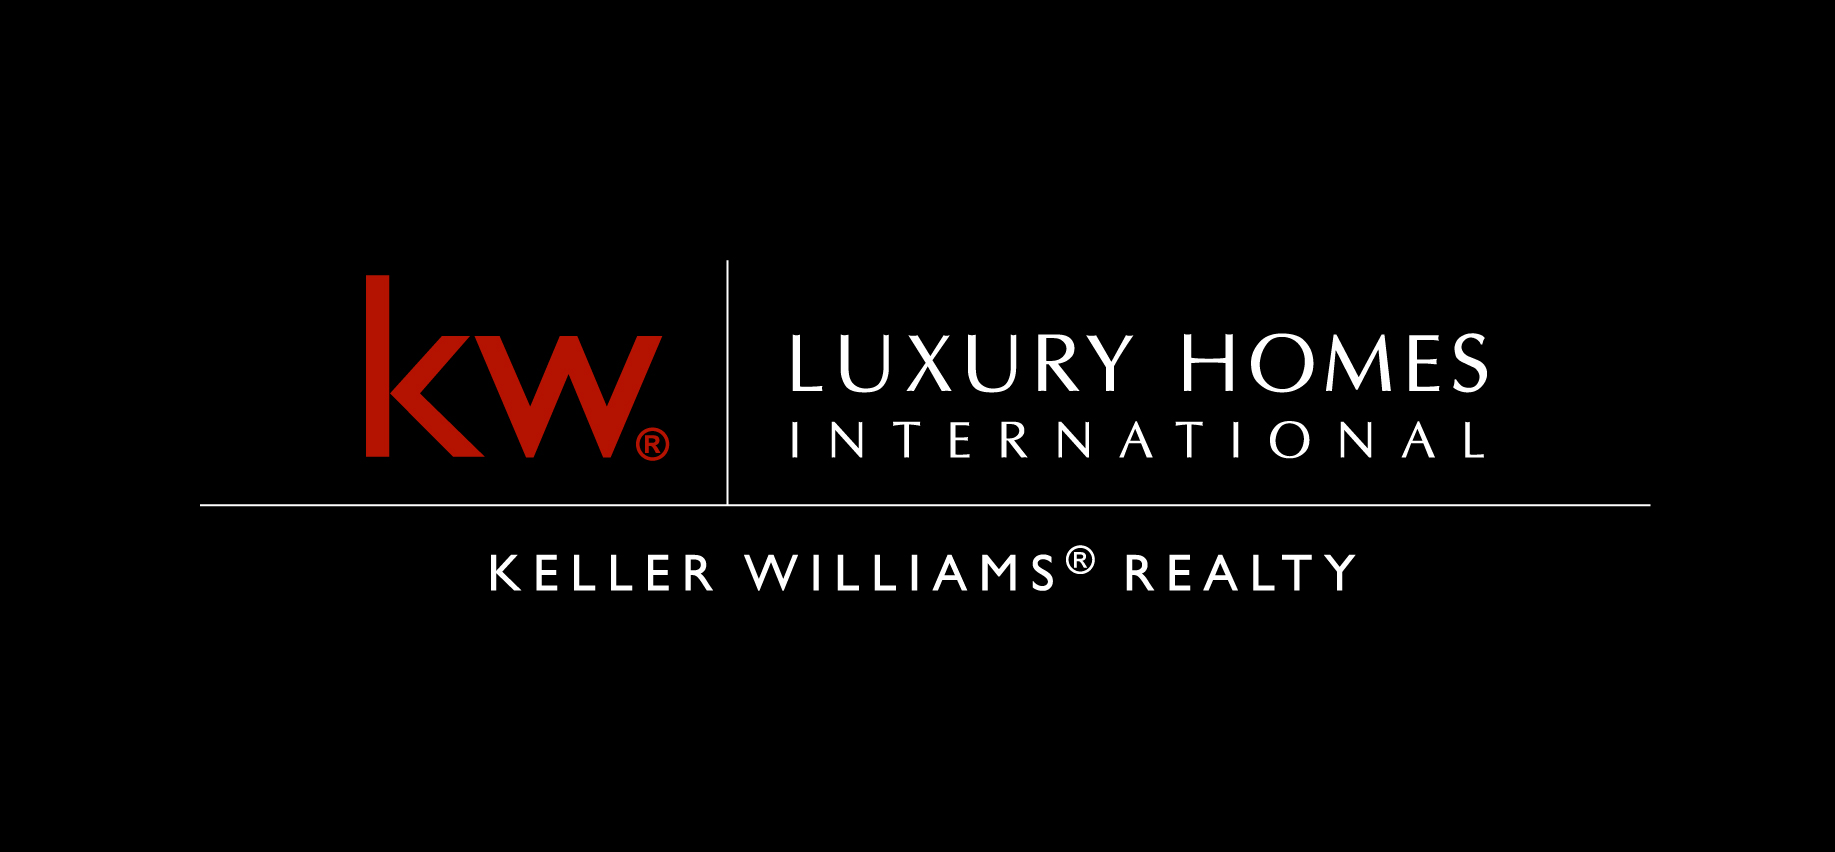 Lynda Has Earned The Prestigious Keller Williams Luxury Homes Specialist  Designation And The Certified Luxury Home Marketing Specialist Designation  From The ...